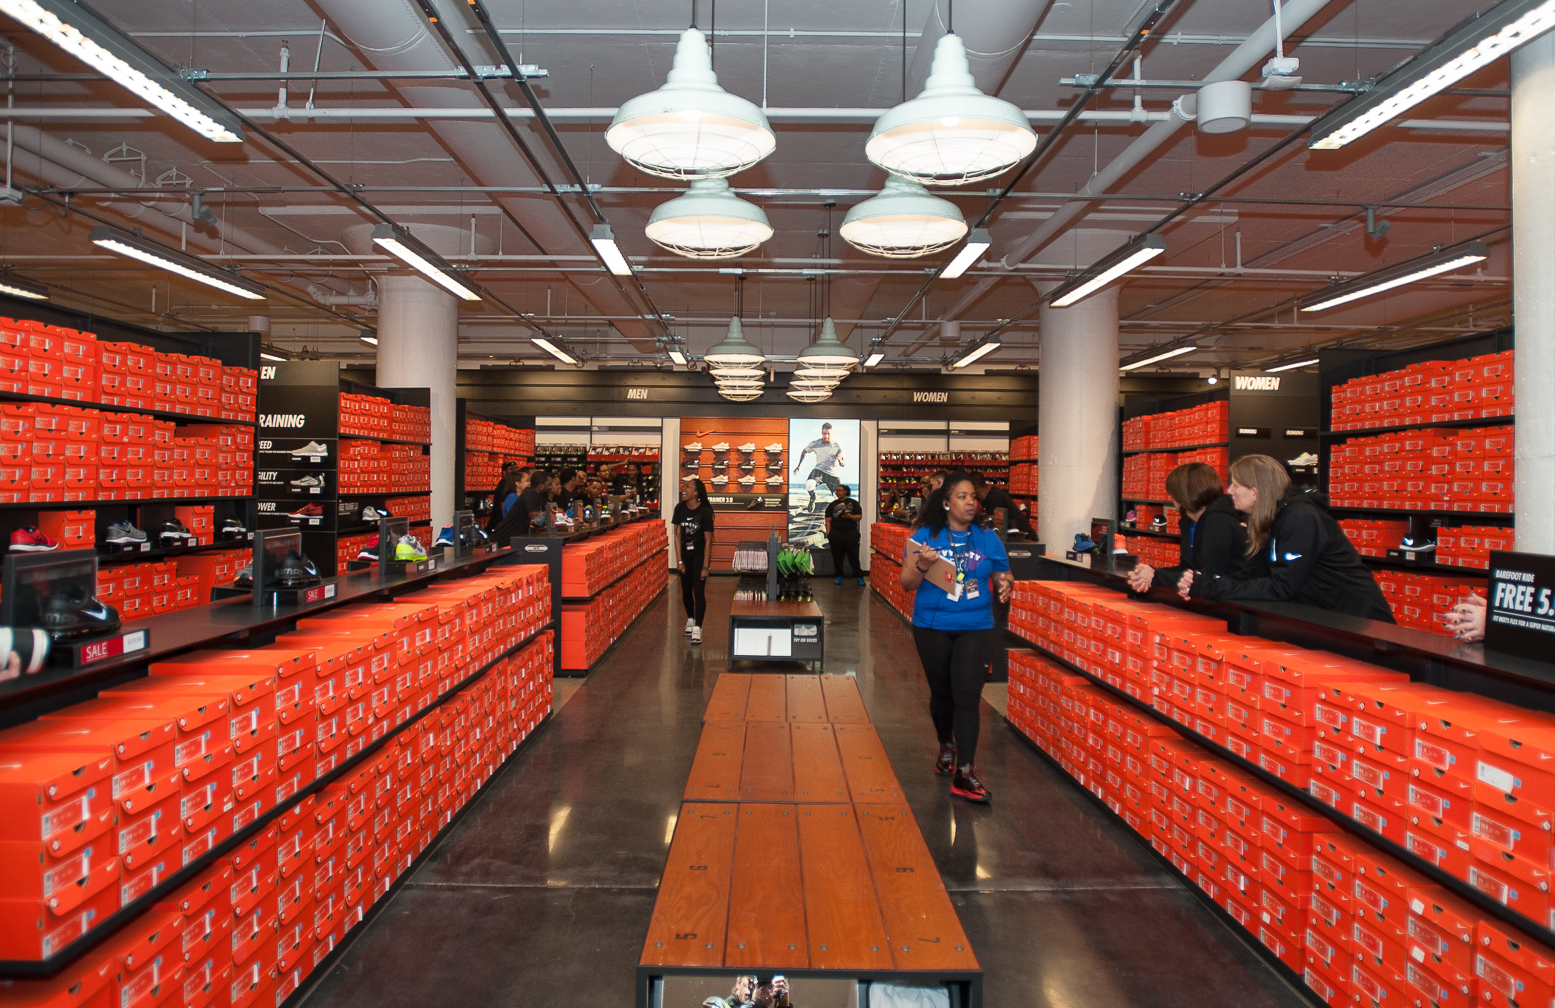 Warehouse Website Nike Opens At The Hecht Warehouse District Douglas